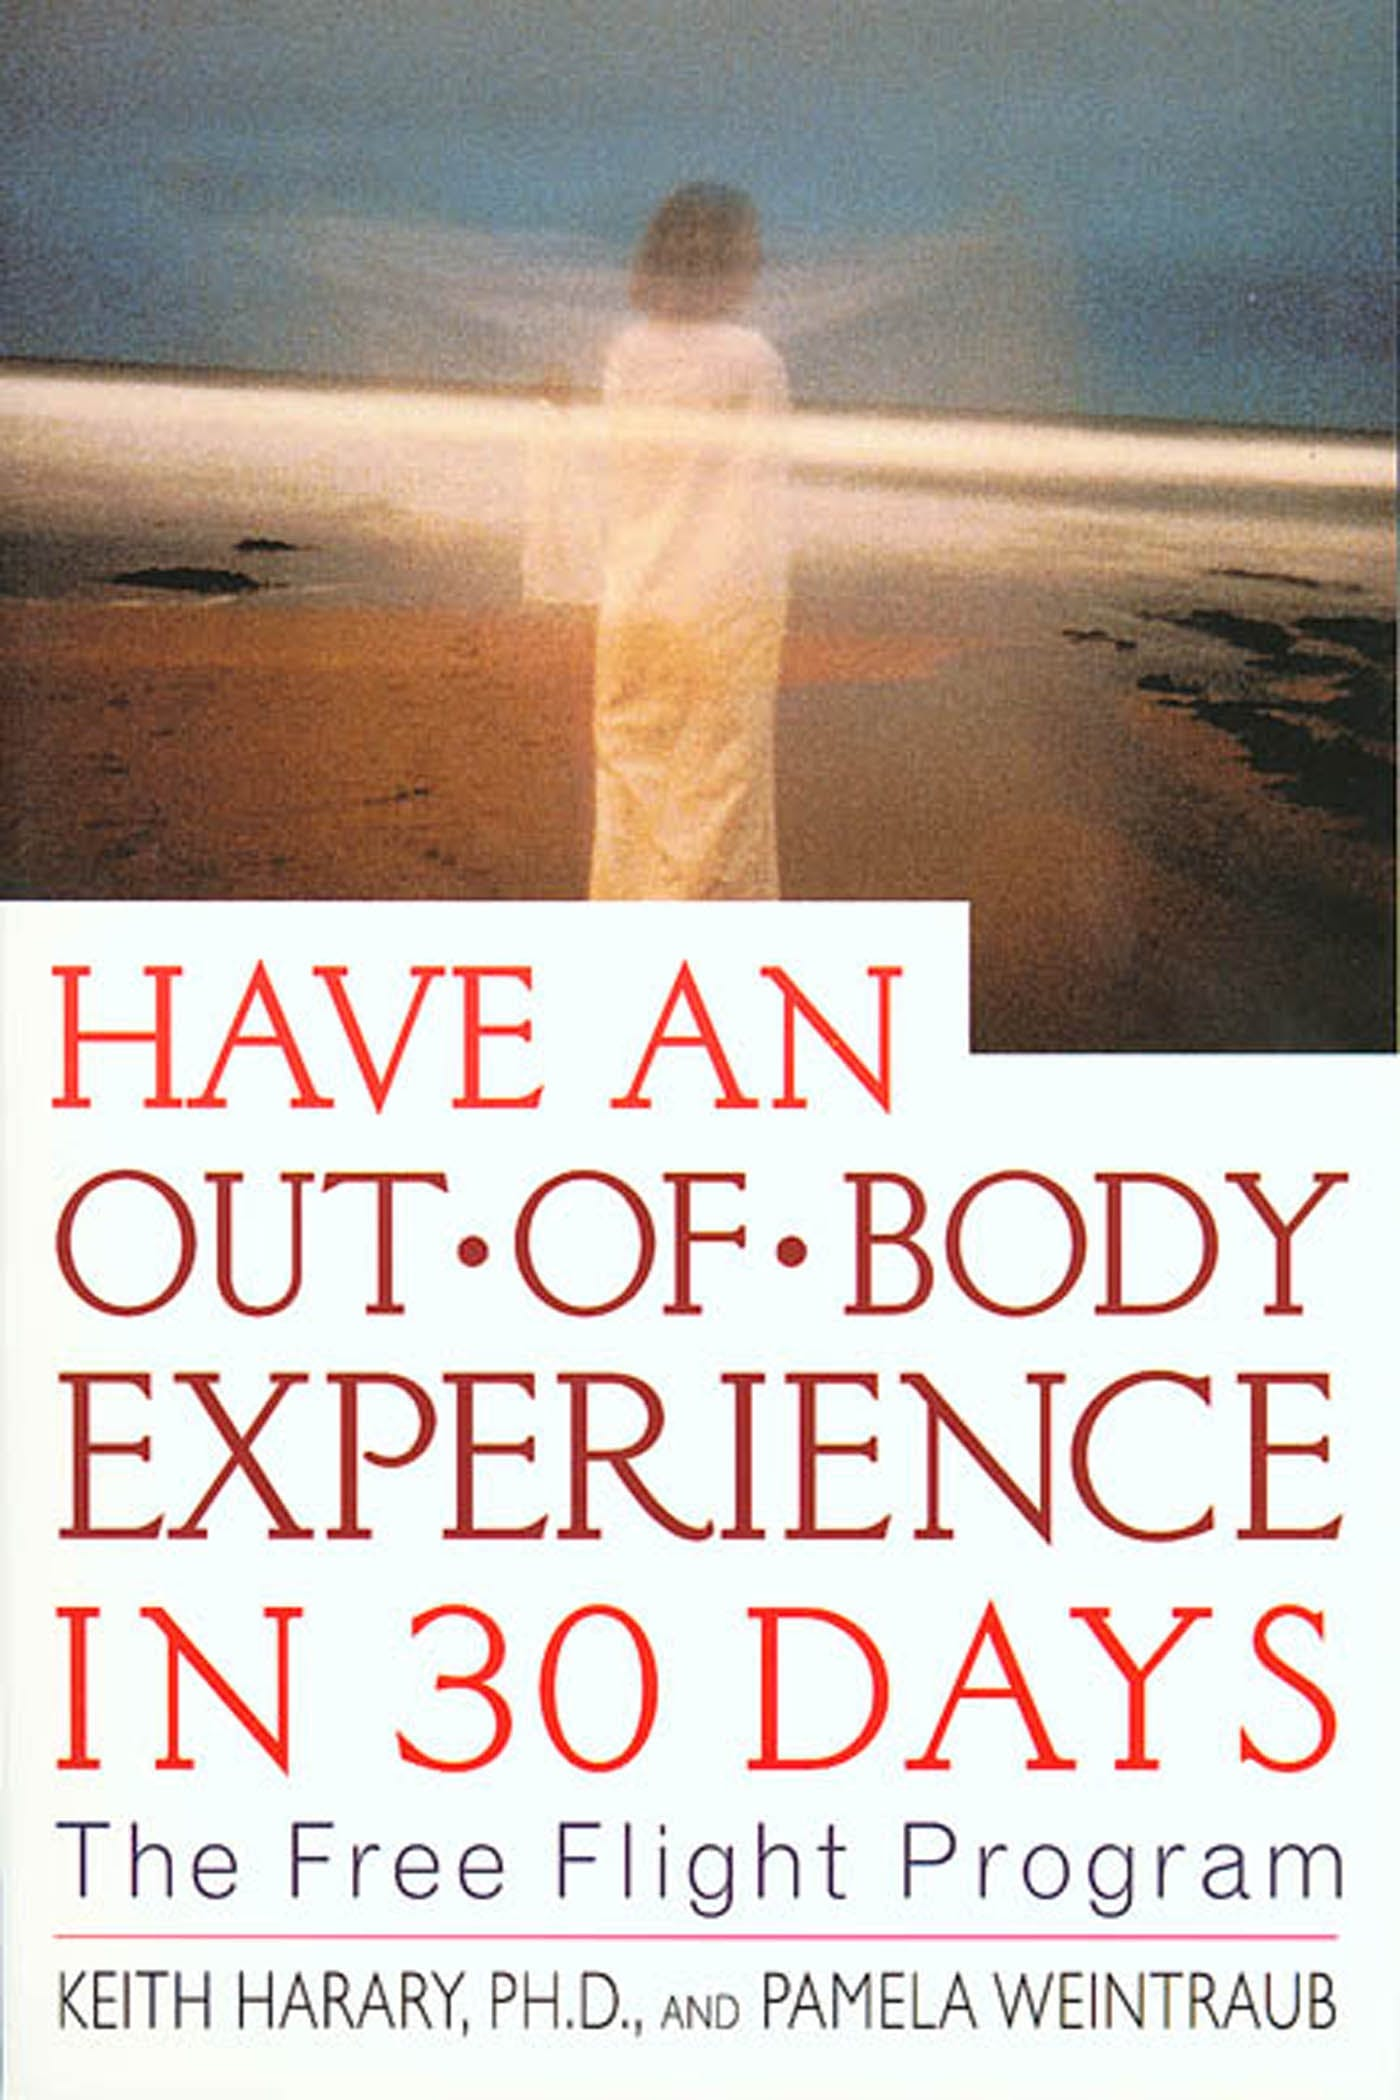 Image of Have an Out-of-Body Experience in 30 Days